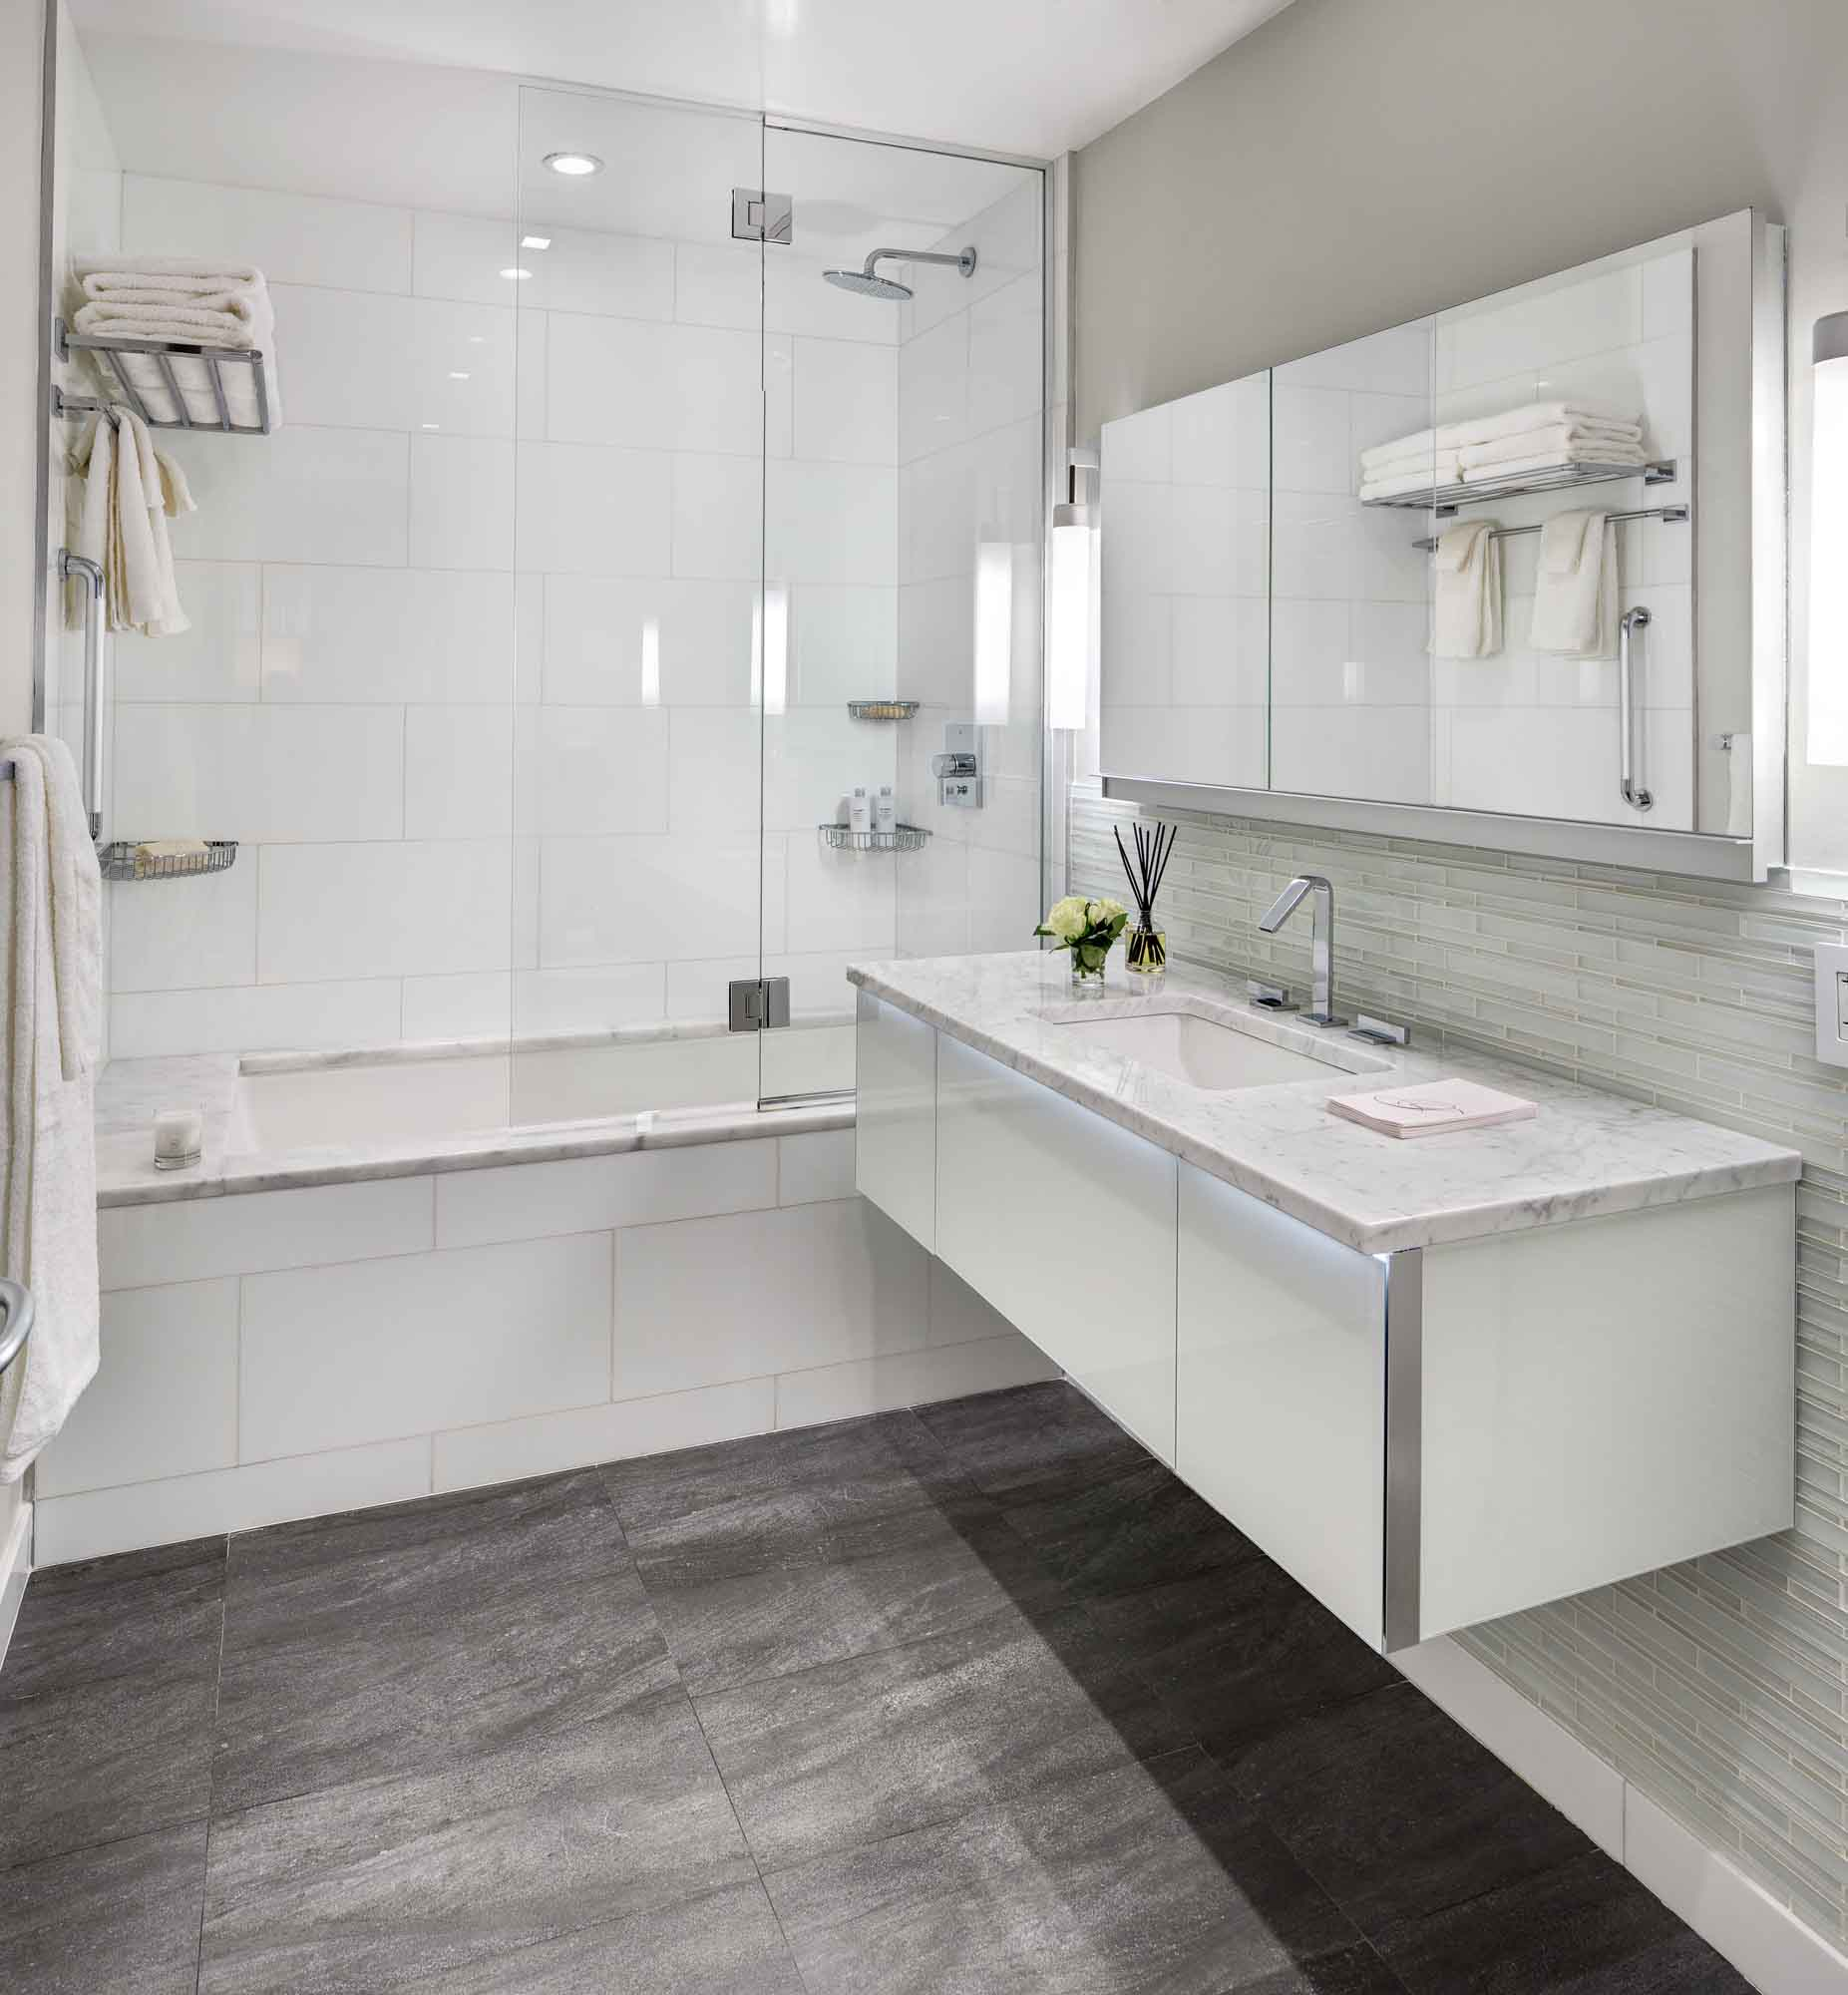 This bathroom looks very bright and spacious, doesn't it? The bathroom is lit by several miniature ceiling-mounted lamps. Pay attention to the large number of glass, polished and mirrored surfaces that not only add shine to the interior, but also visually expand the room. The dominant color here is white, which perfectly reflects the light emitted by the fixtures, also making the room bright and spacious. Don't miss the chance to elevate your bathroom interior design together with the best Grandeur Hills Group specialists